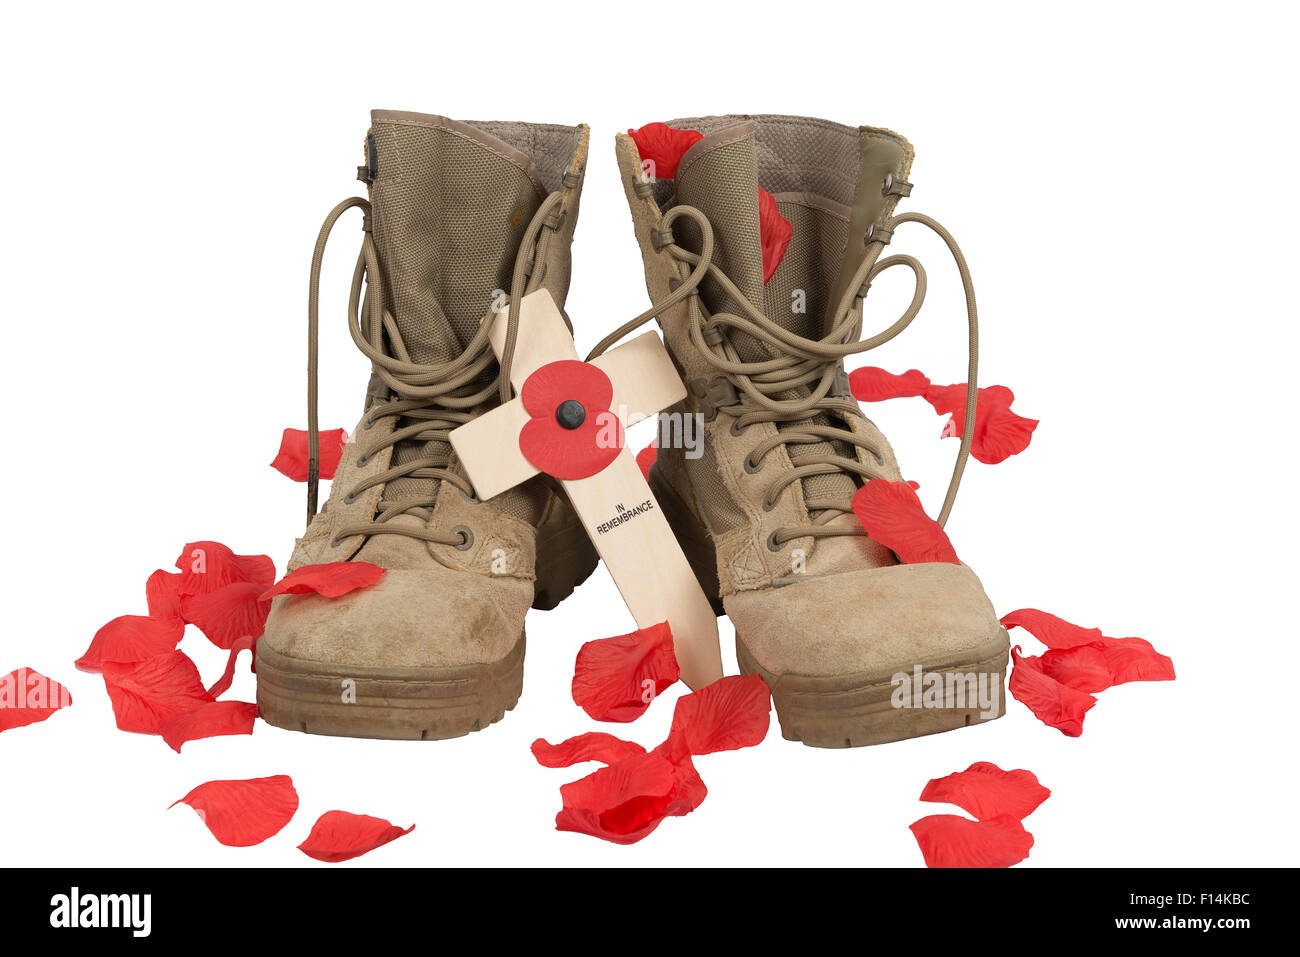 Pair of British Army desert combat boots on a white background with a cross and poppy and poppy petals (artificial). - Stock Image